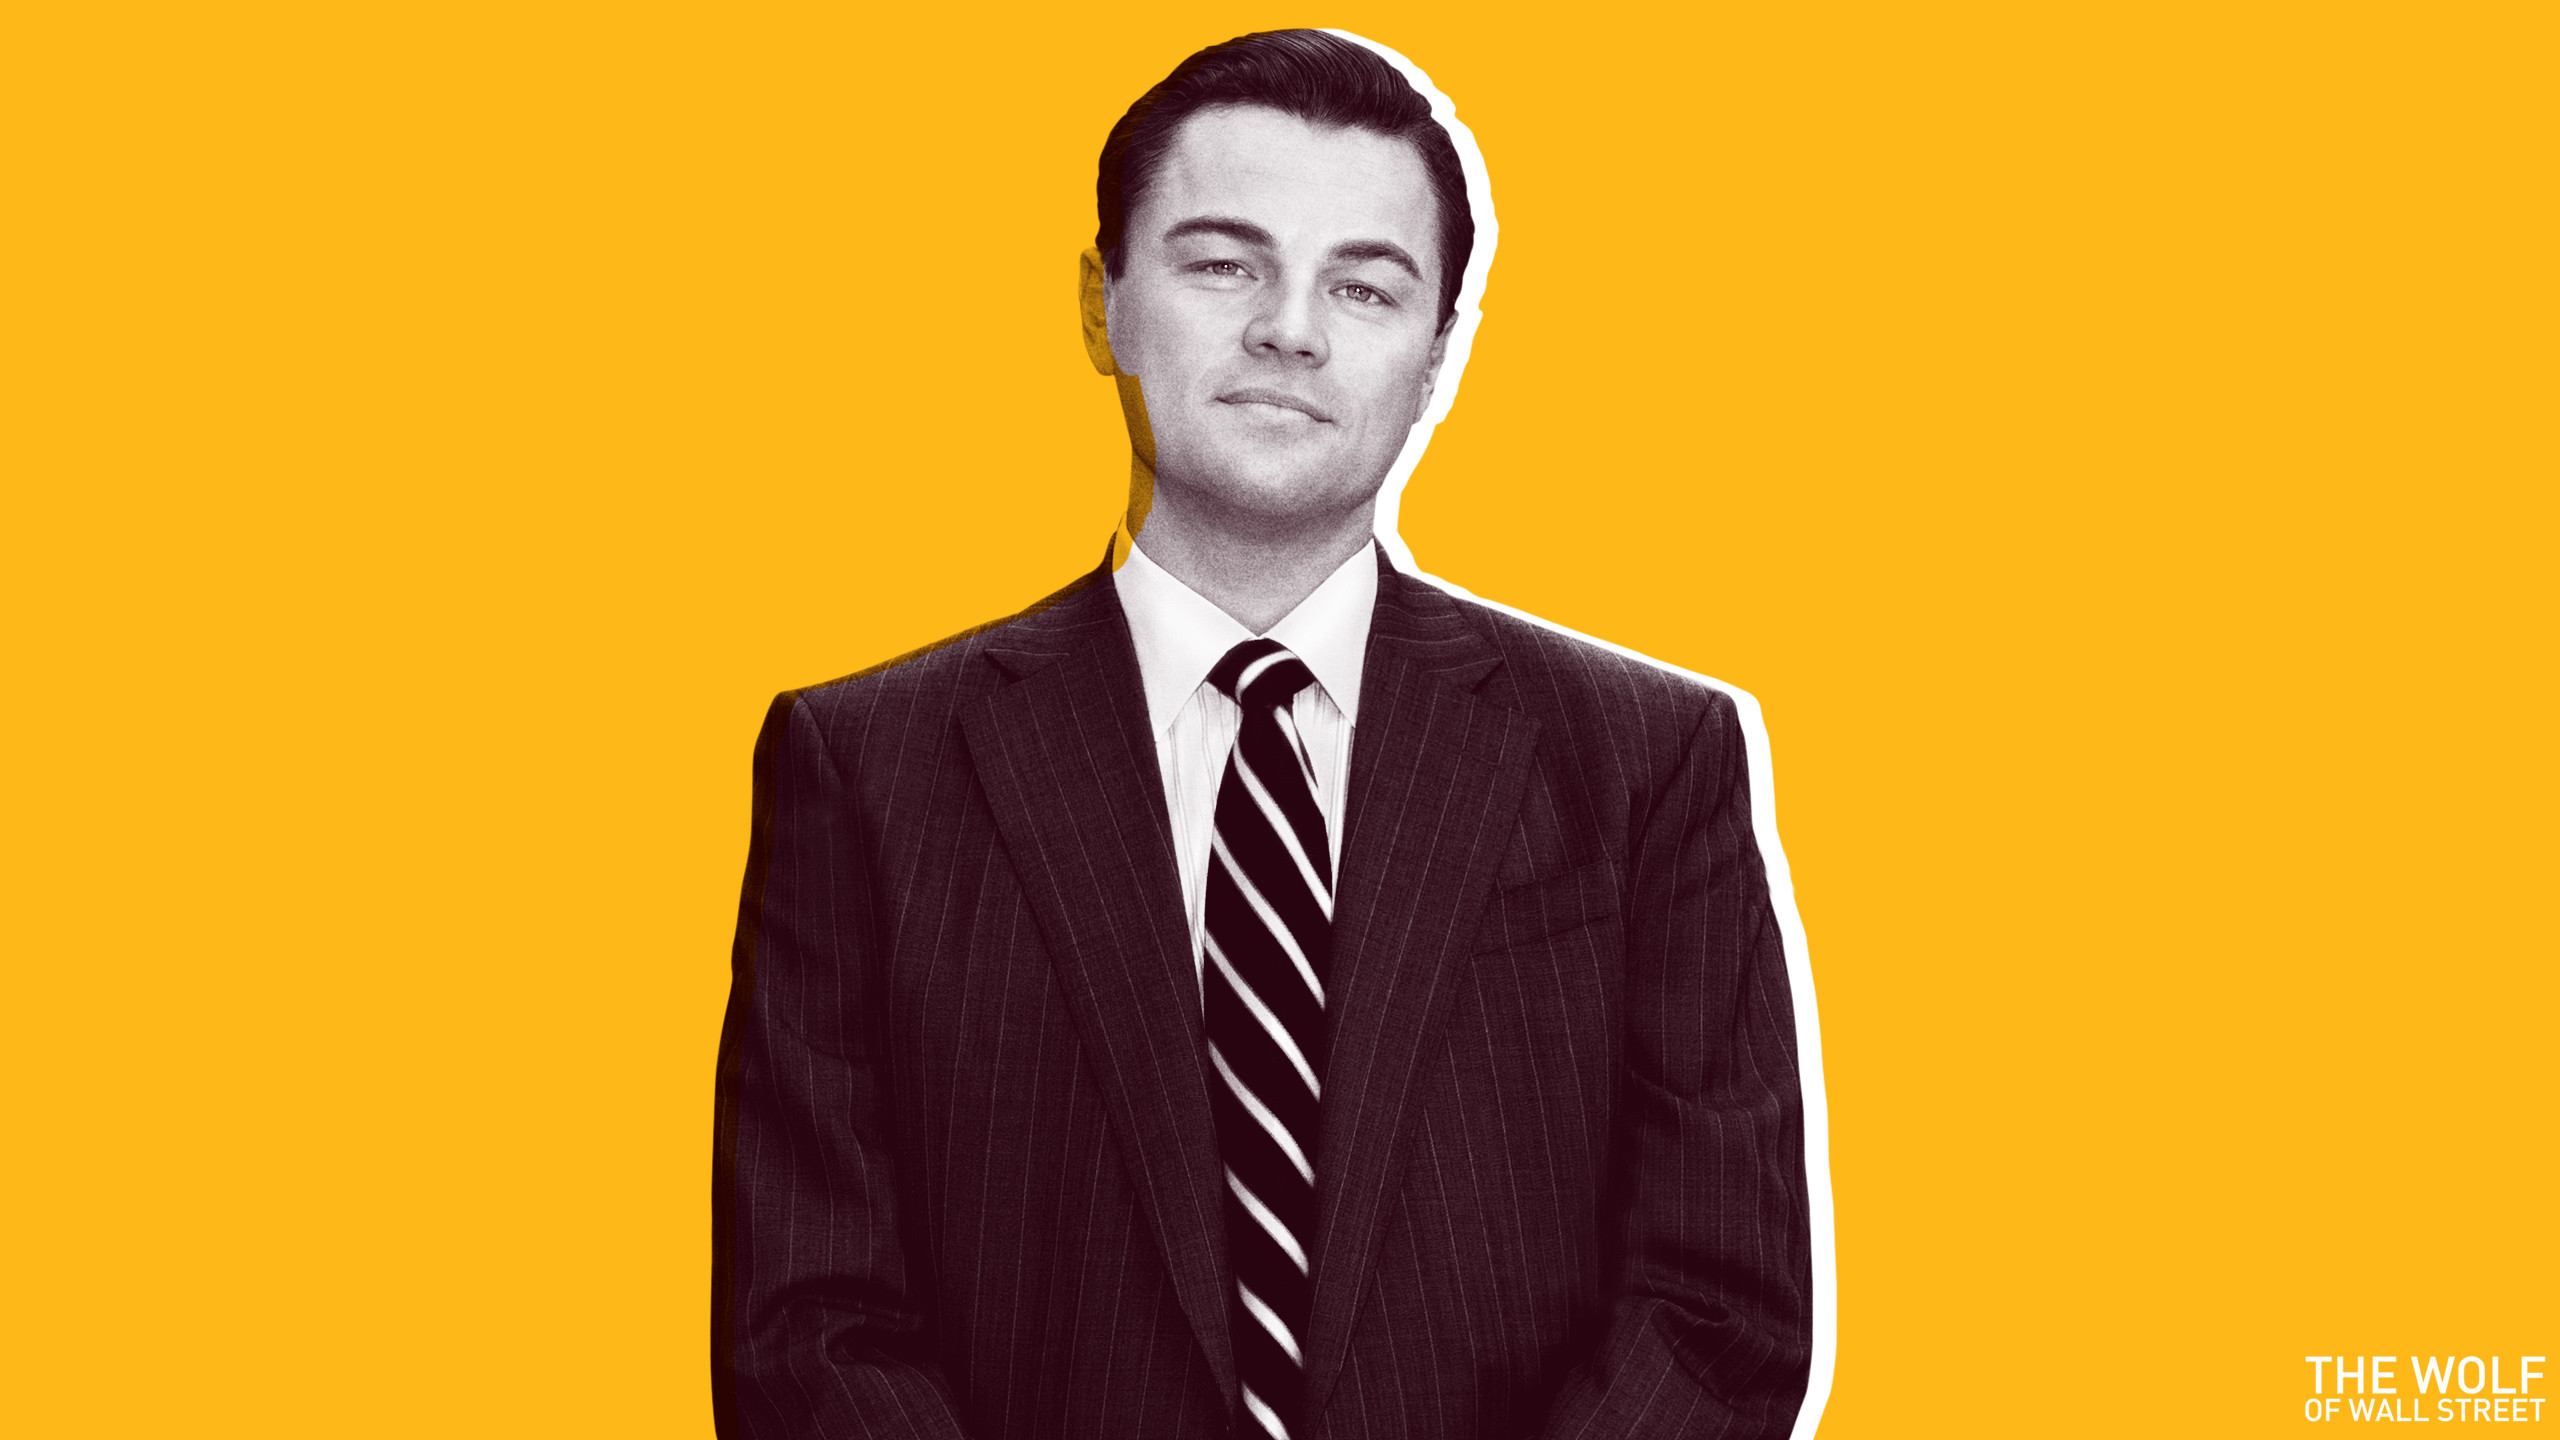 The Wolf Of Wall Street Wallpaper (89+ Immagini